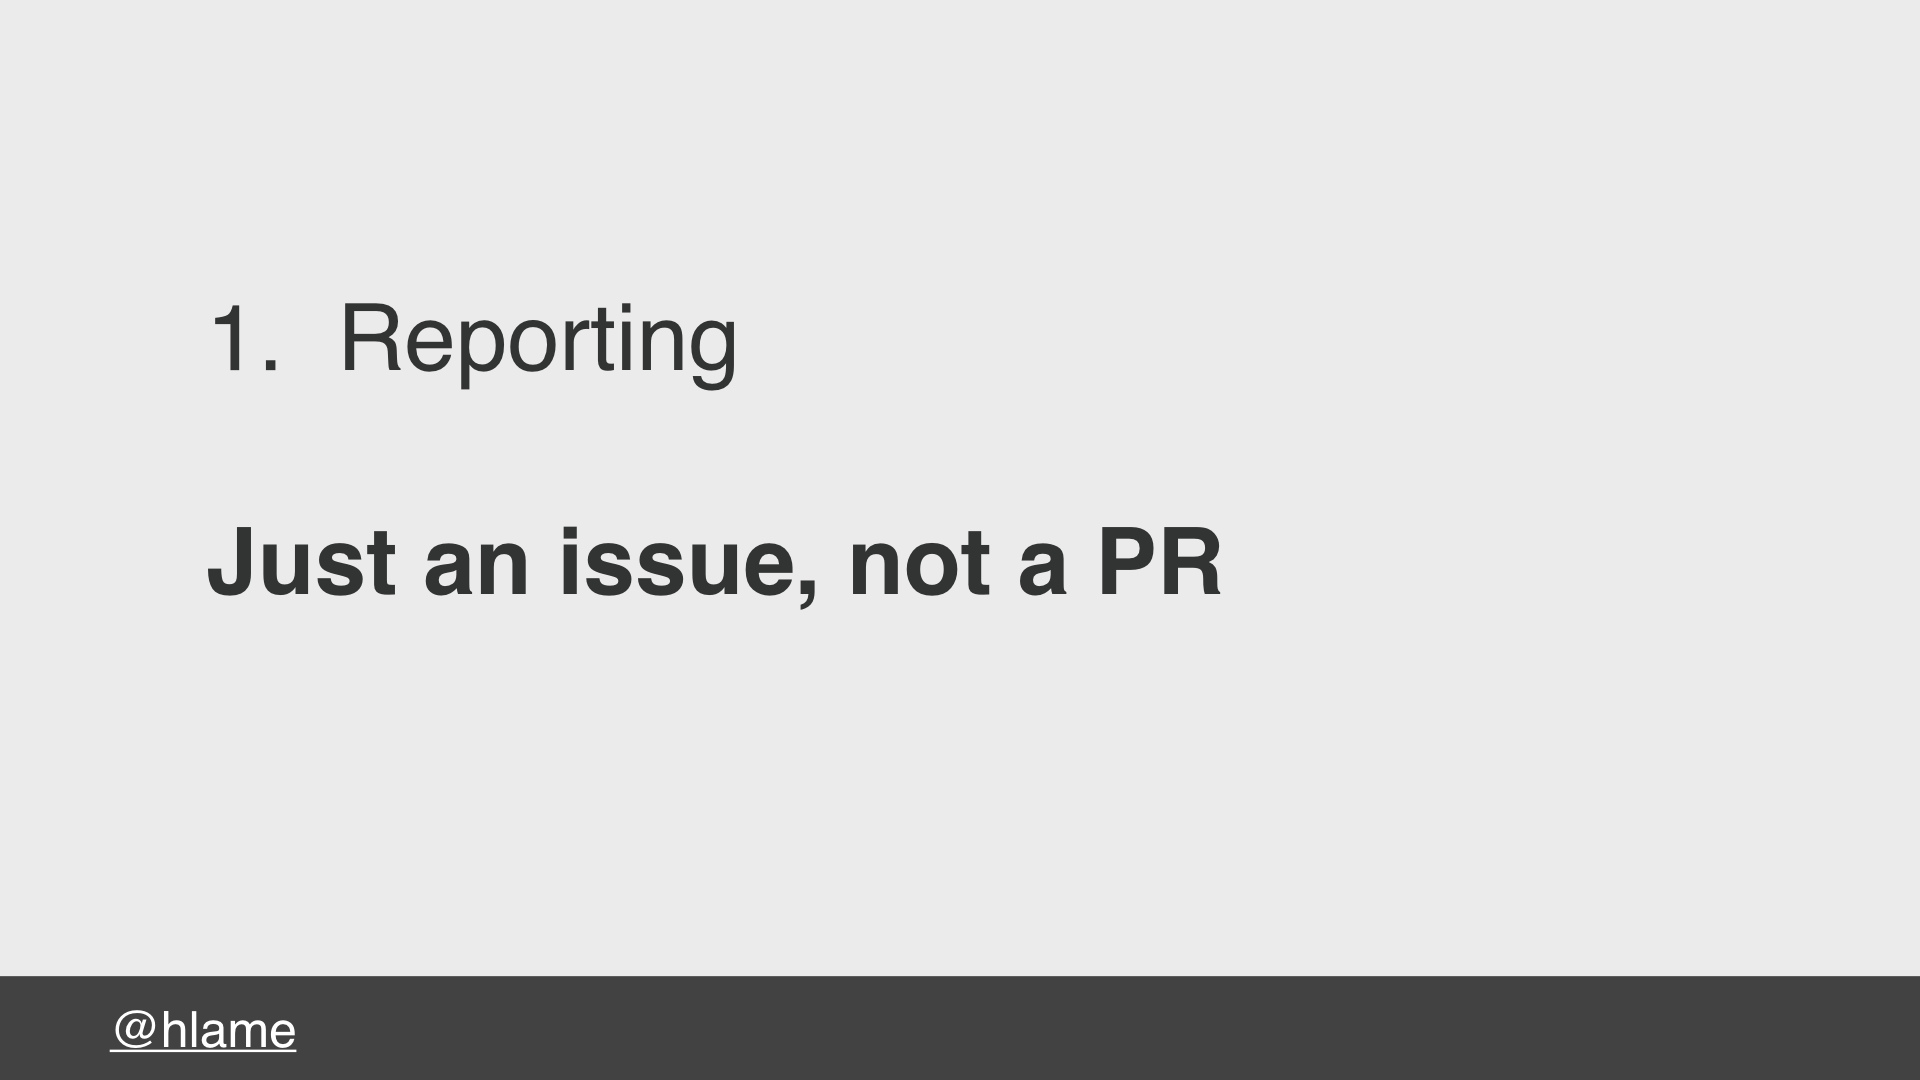 text: 1. Reporting, Just an issue, not a PR